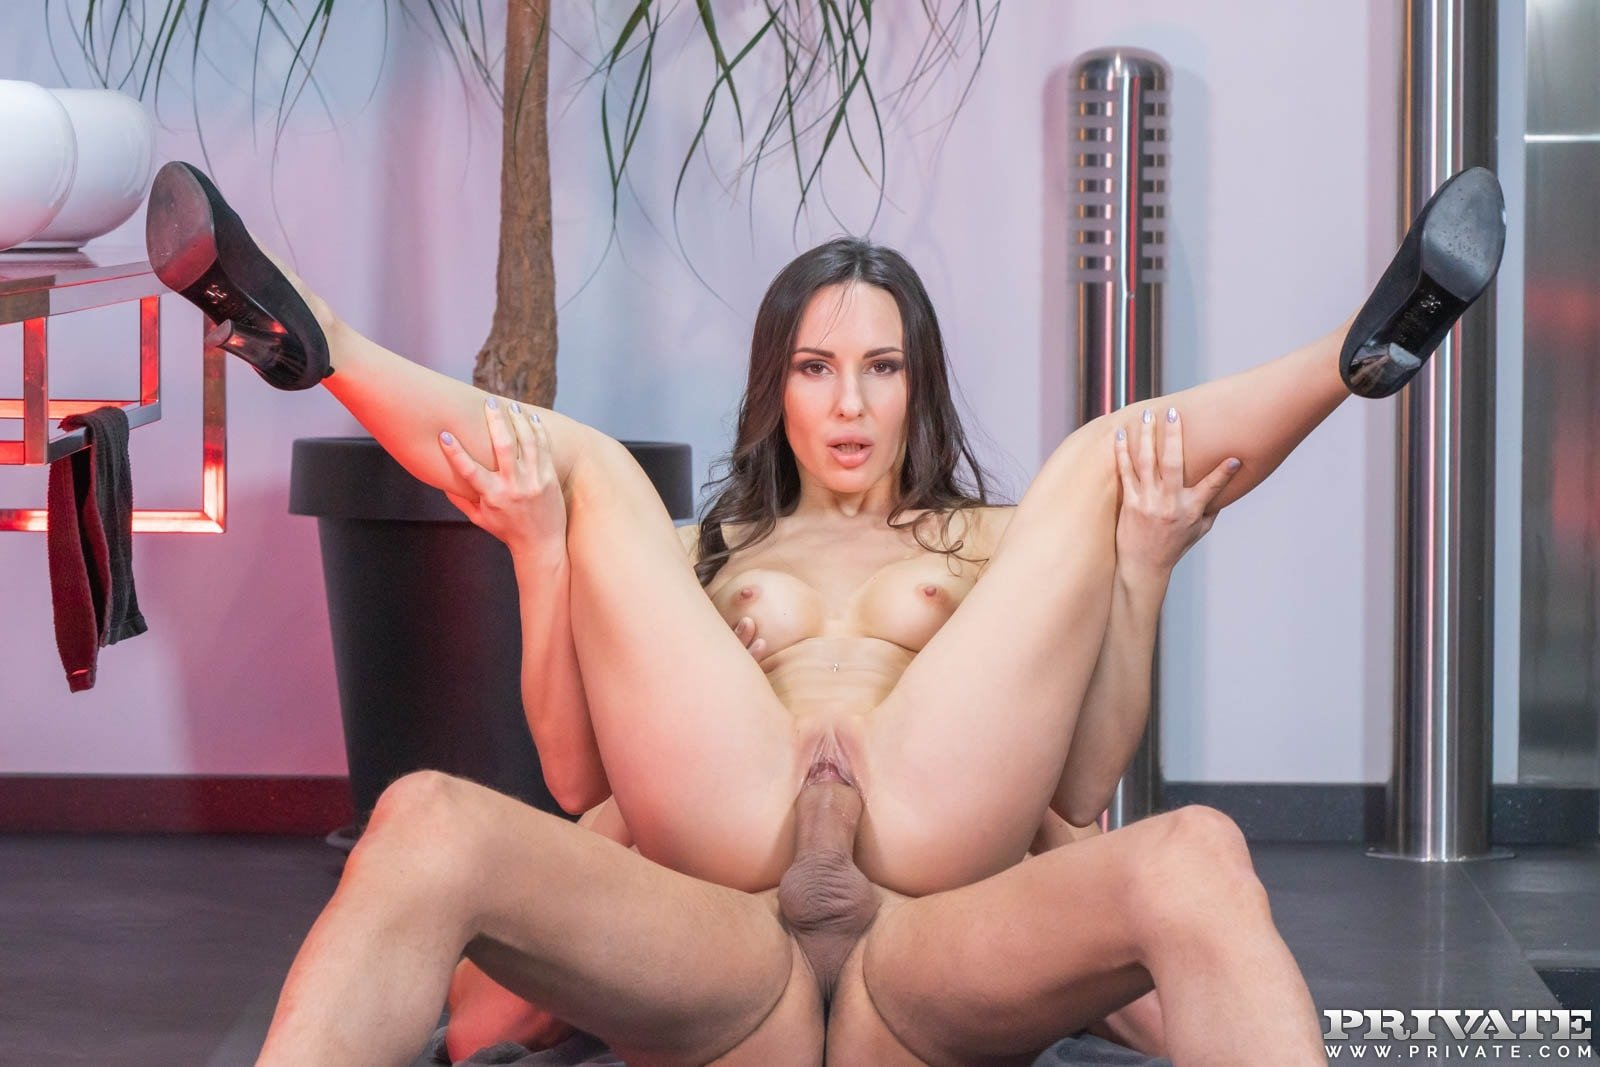 Mature porn star anal Banging with the family on fourth of jukt